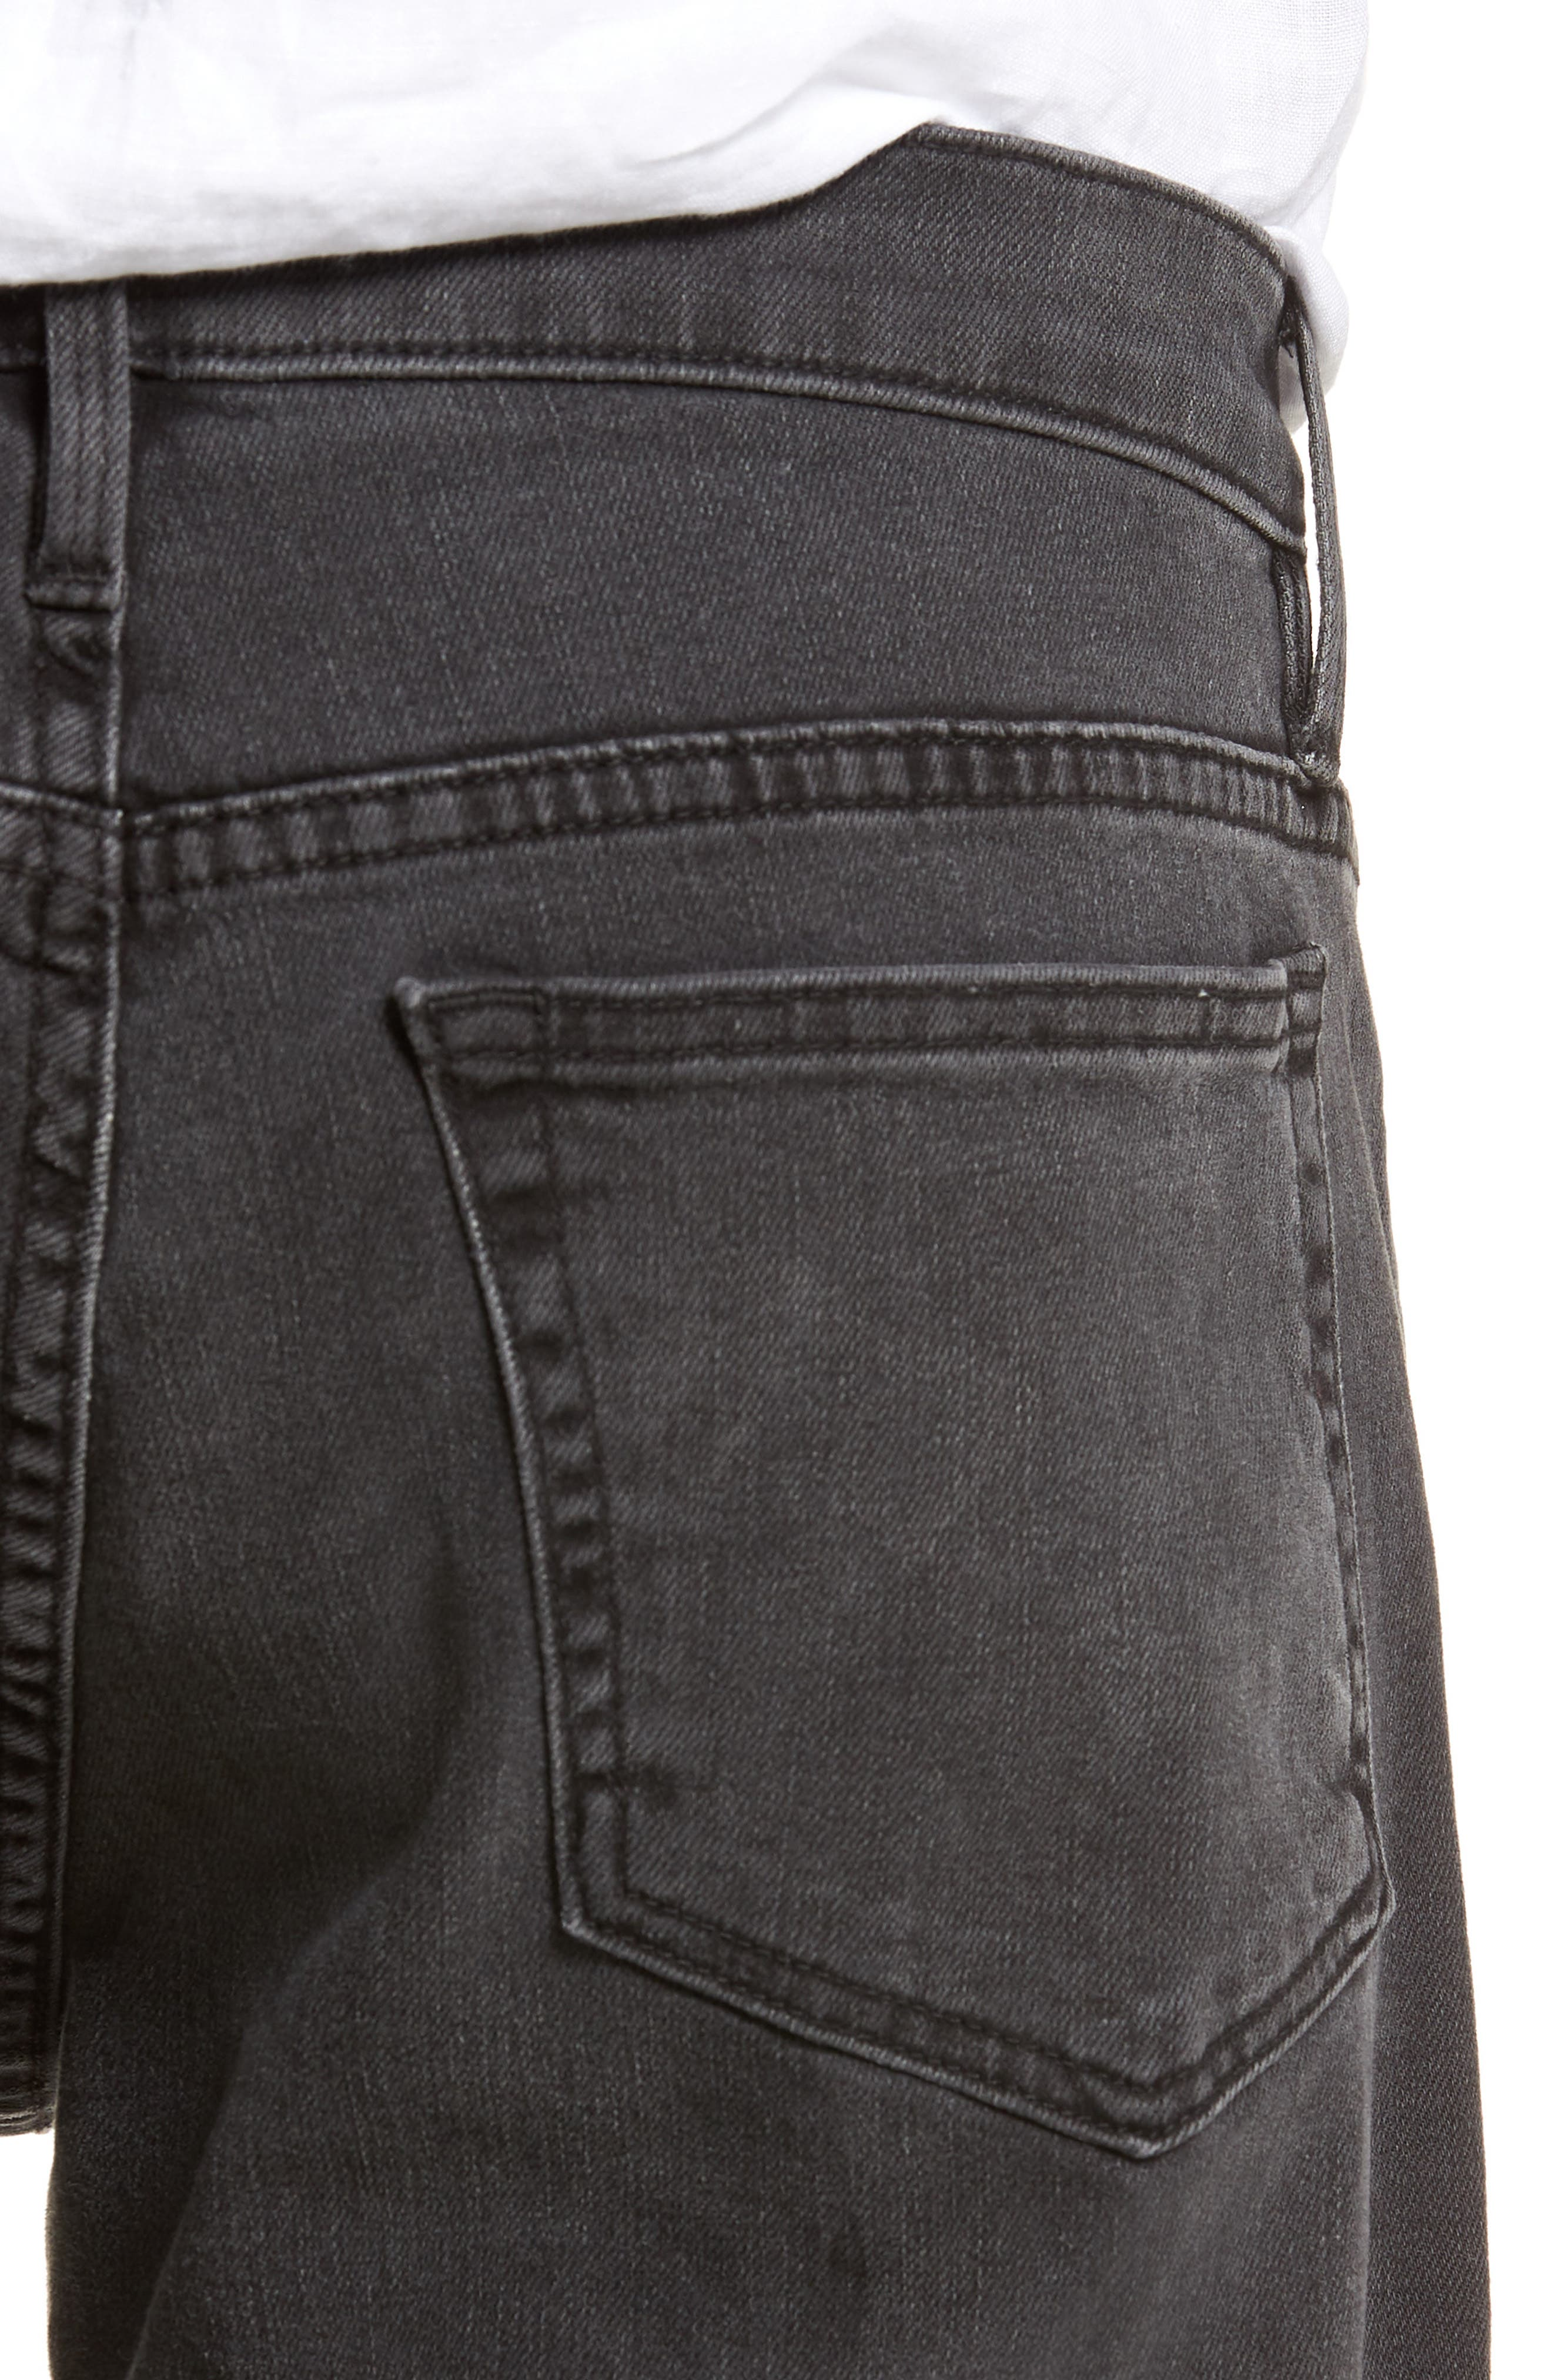 L'Homme Straight Leg Jeans,                             Alternate thumbnail 4, color,                             FADE TO GREY